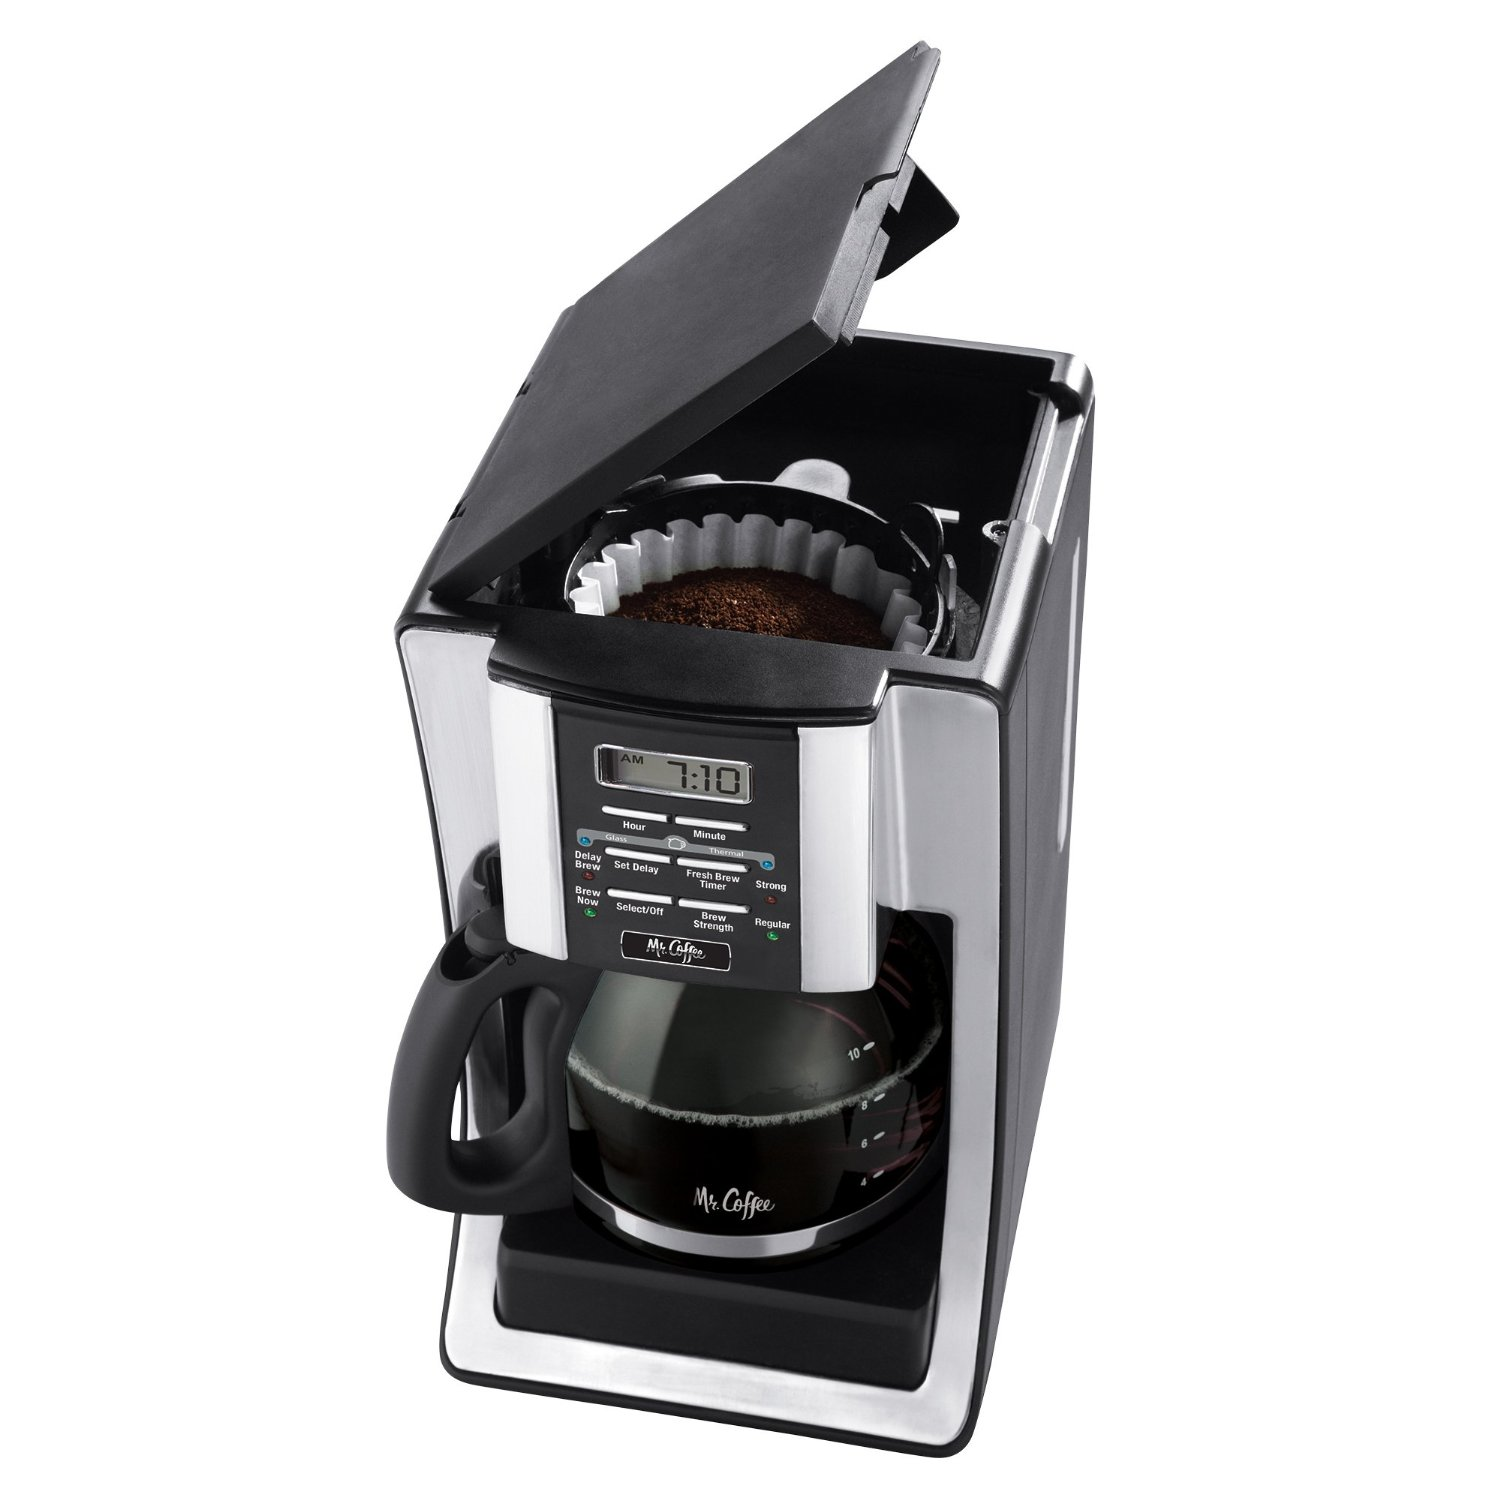 This Coffee Maker Good Looks Are Only Surpassed By Its